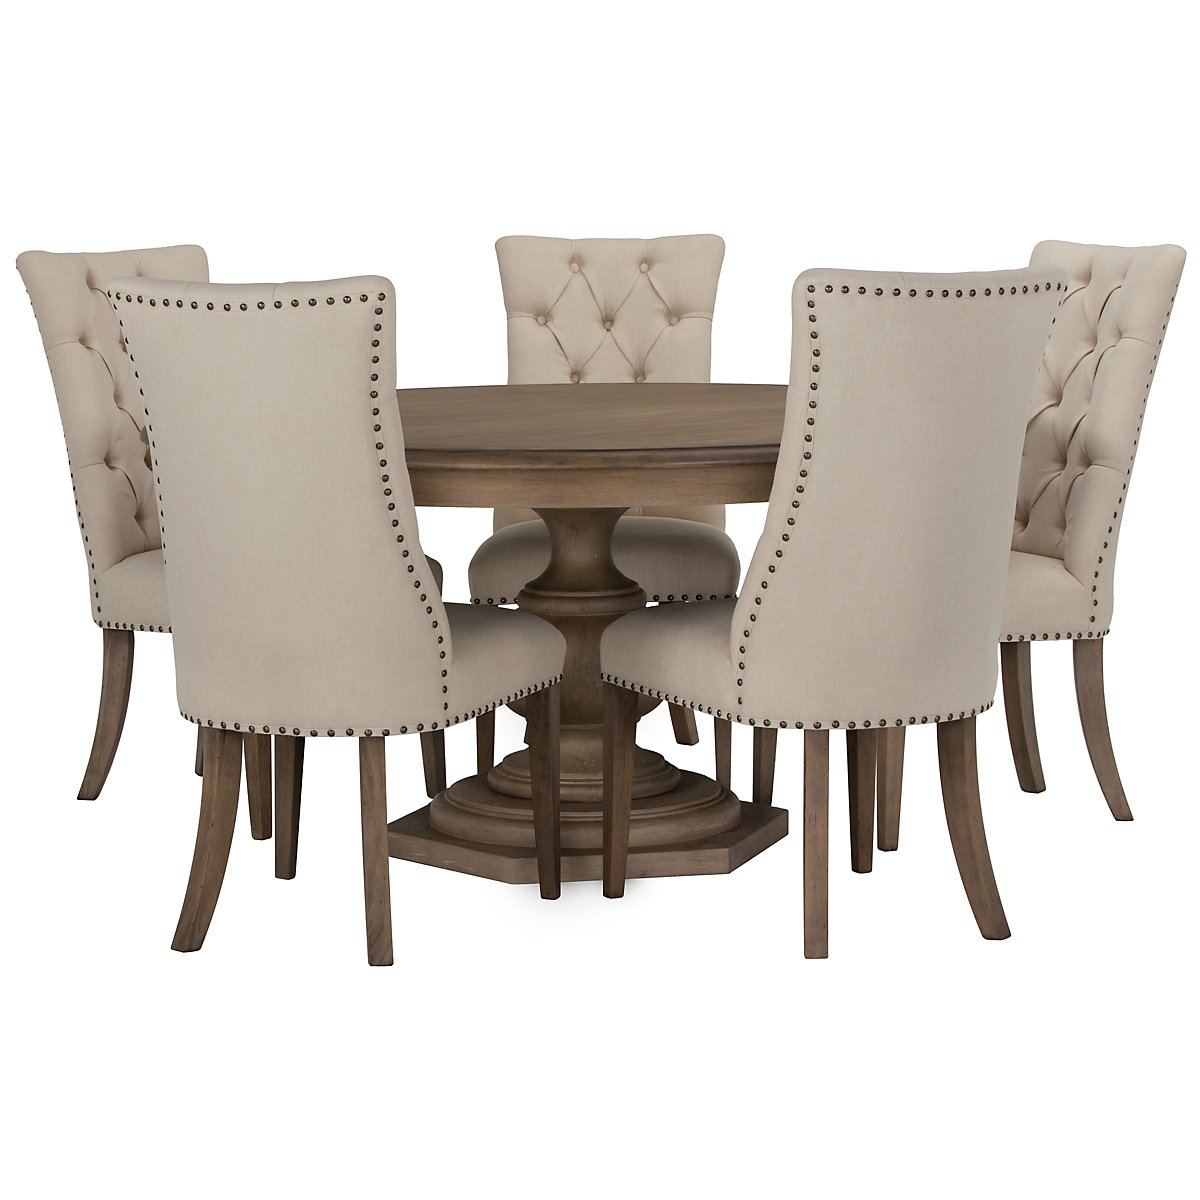 City furniture haddie light tone round table 4 for Round dining table set